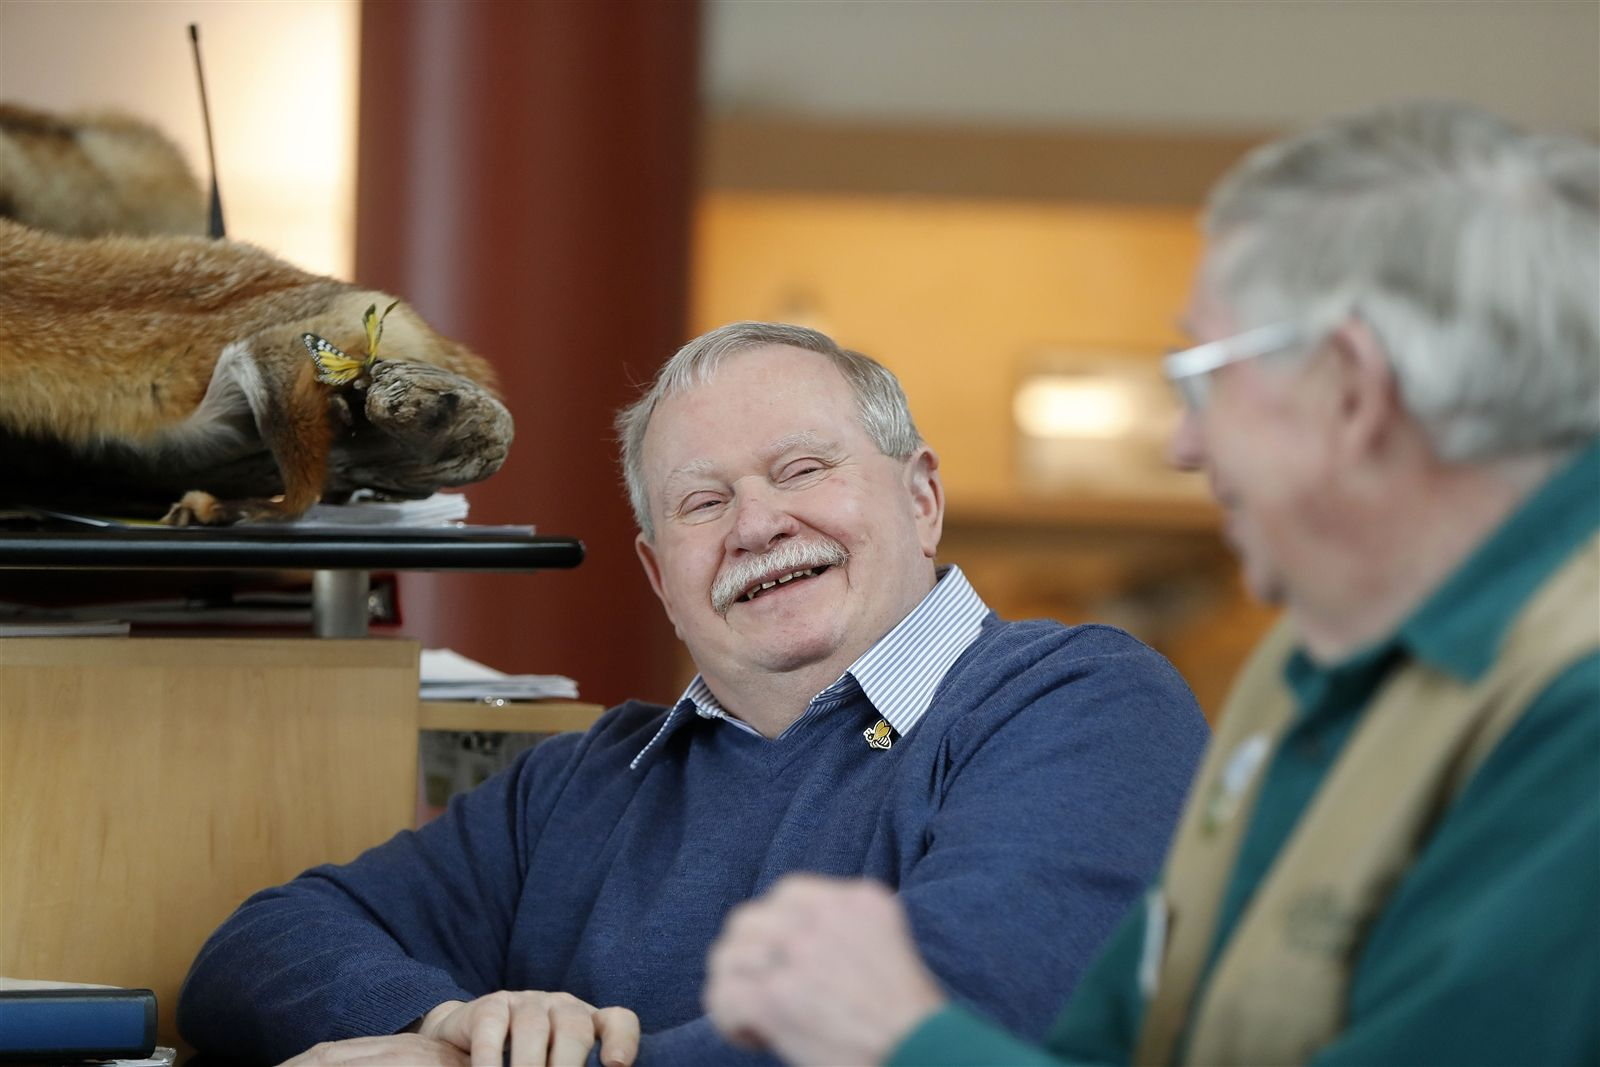 Tom Ridge Environmental Center Volunteers Michael Koncewicz, left, and Tom Golab share a laugh at the visitors desk.